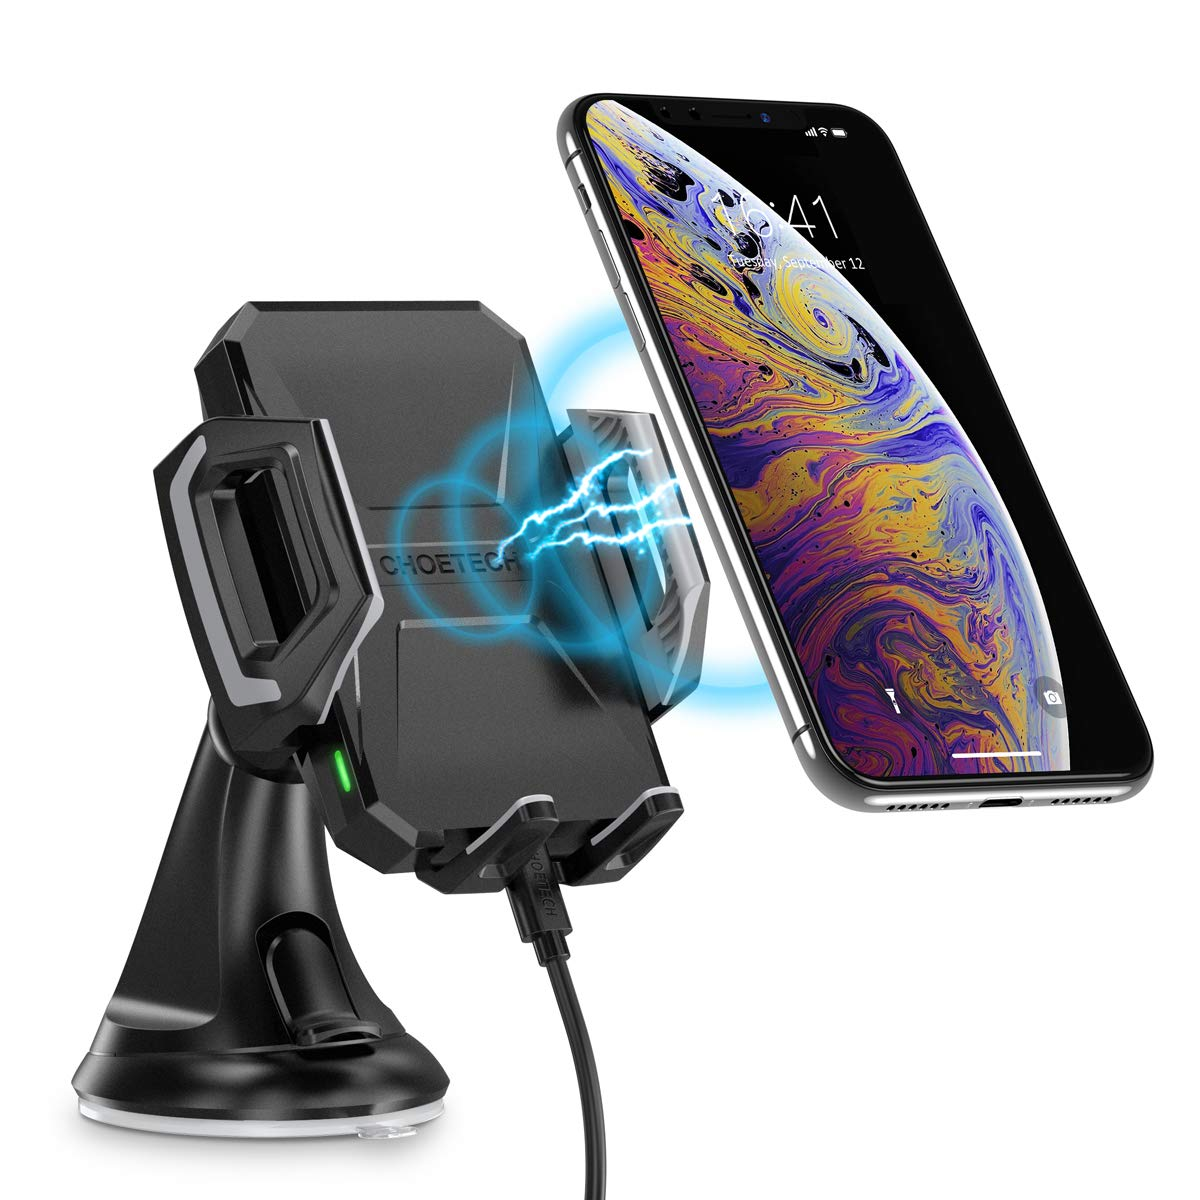 CHOETECH CA-T521S Wireless Car Charger, Black Shenzhen DAK Technology Co. Limited